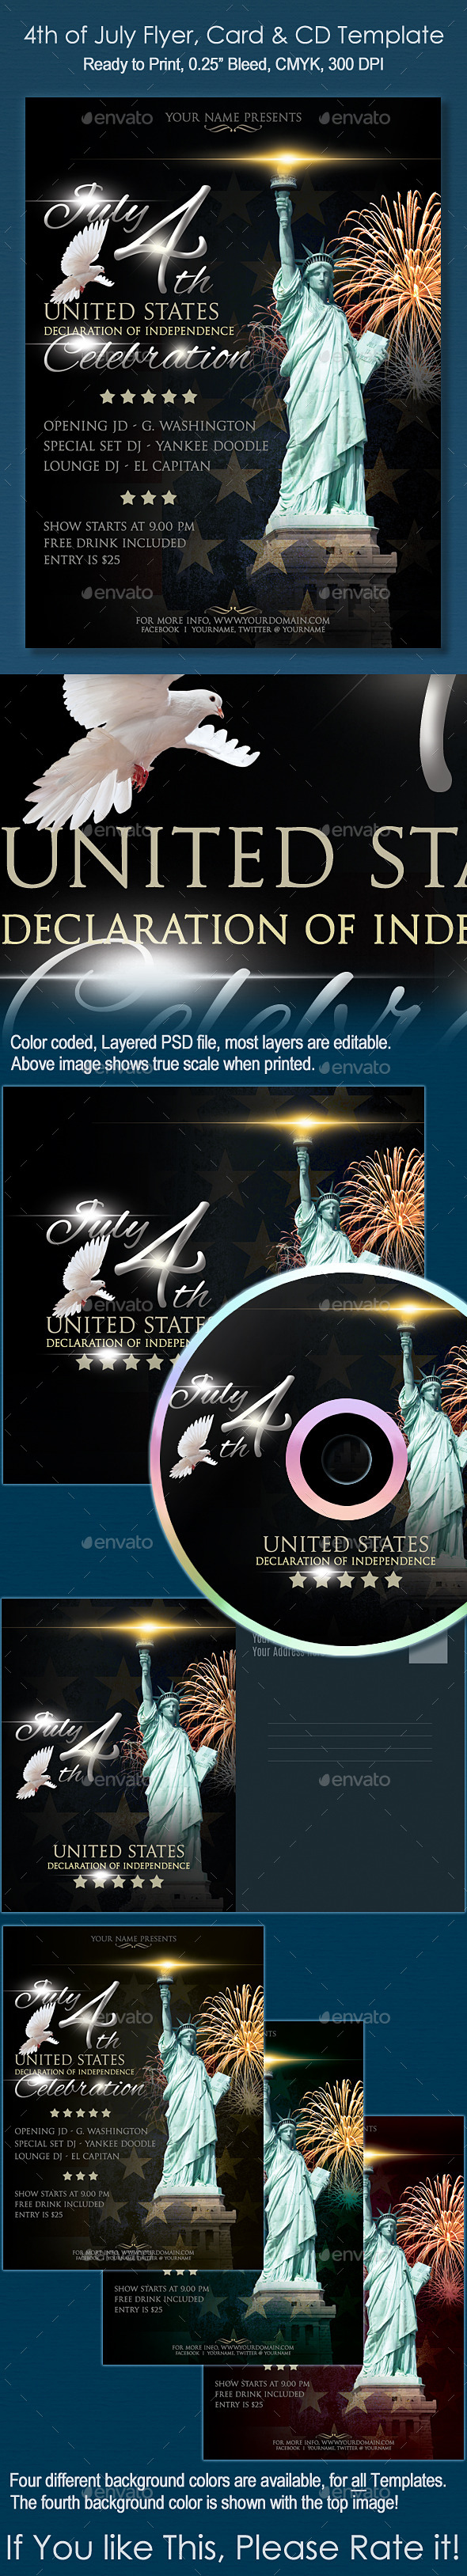 GraphicRiver 4th of July Flyer CD and Card Template 11617073